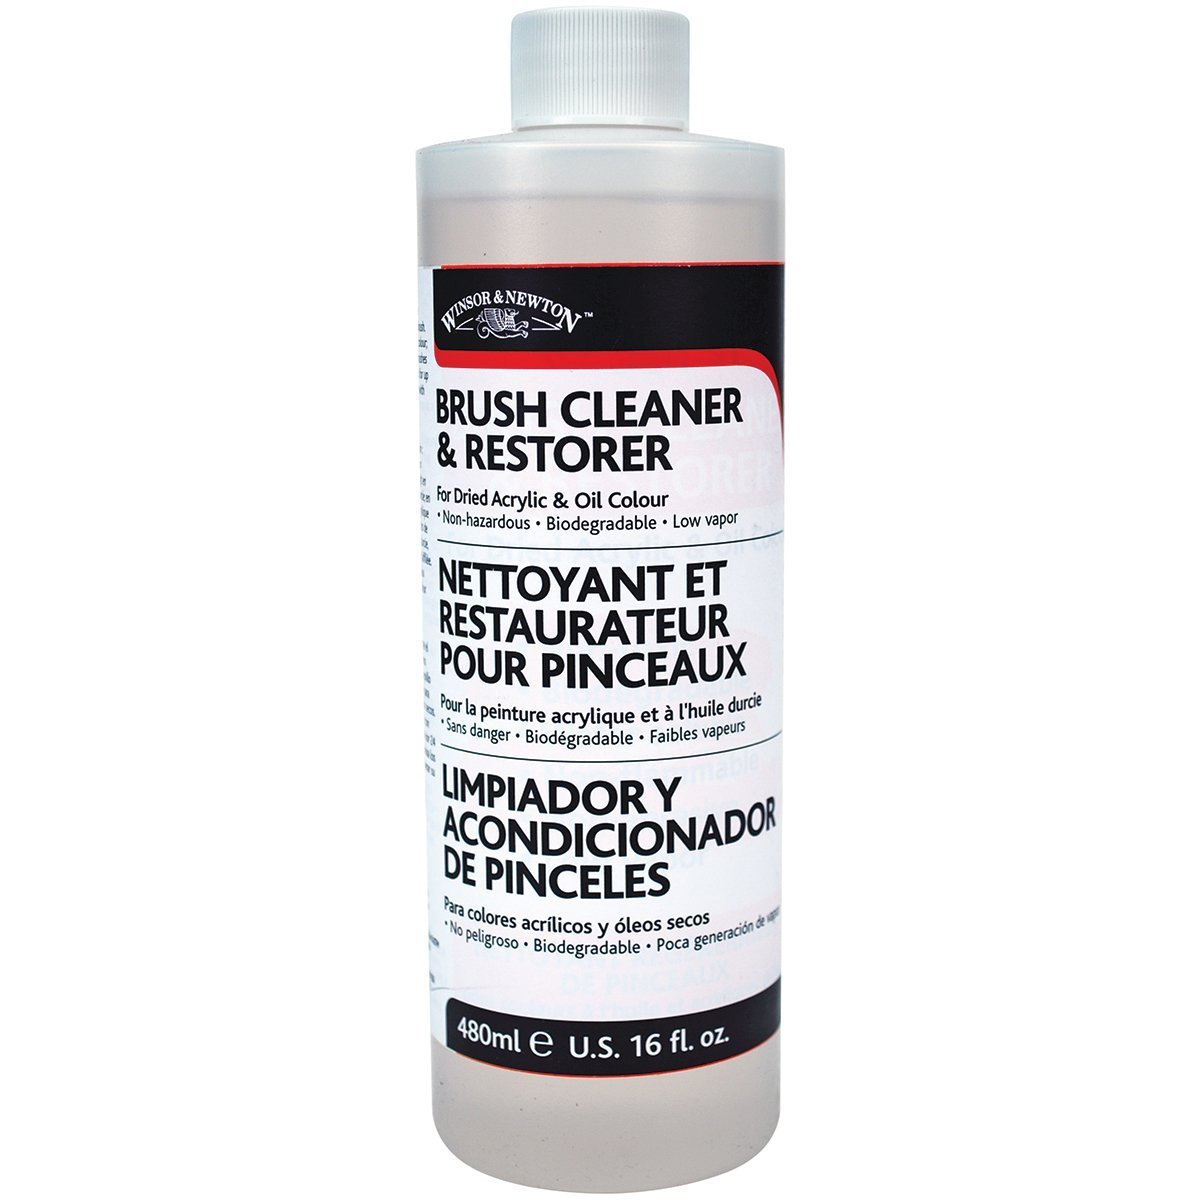 Winsor & Newton Brush Cleaner & Restorer - 16 oz. bottle by Winsor & Newton